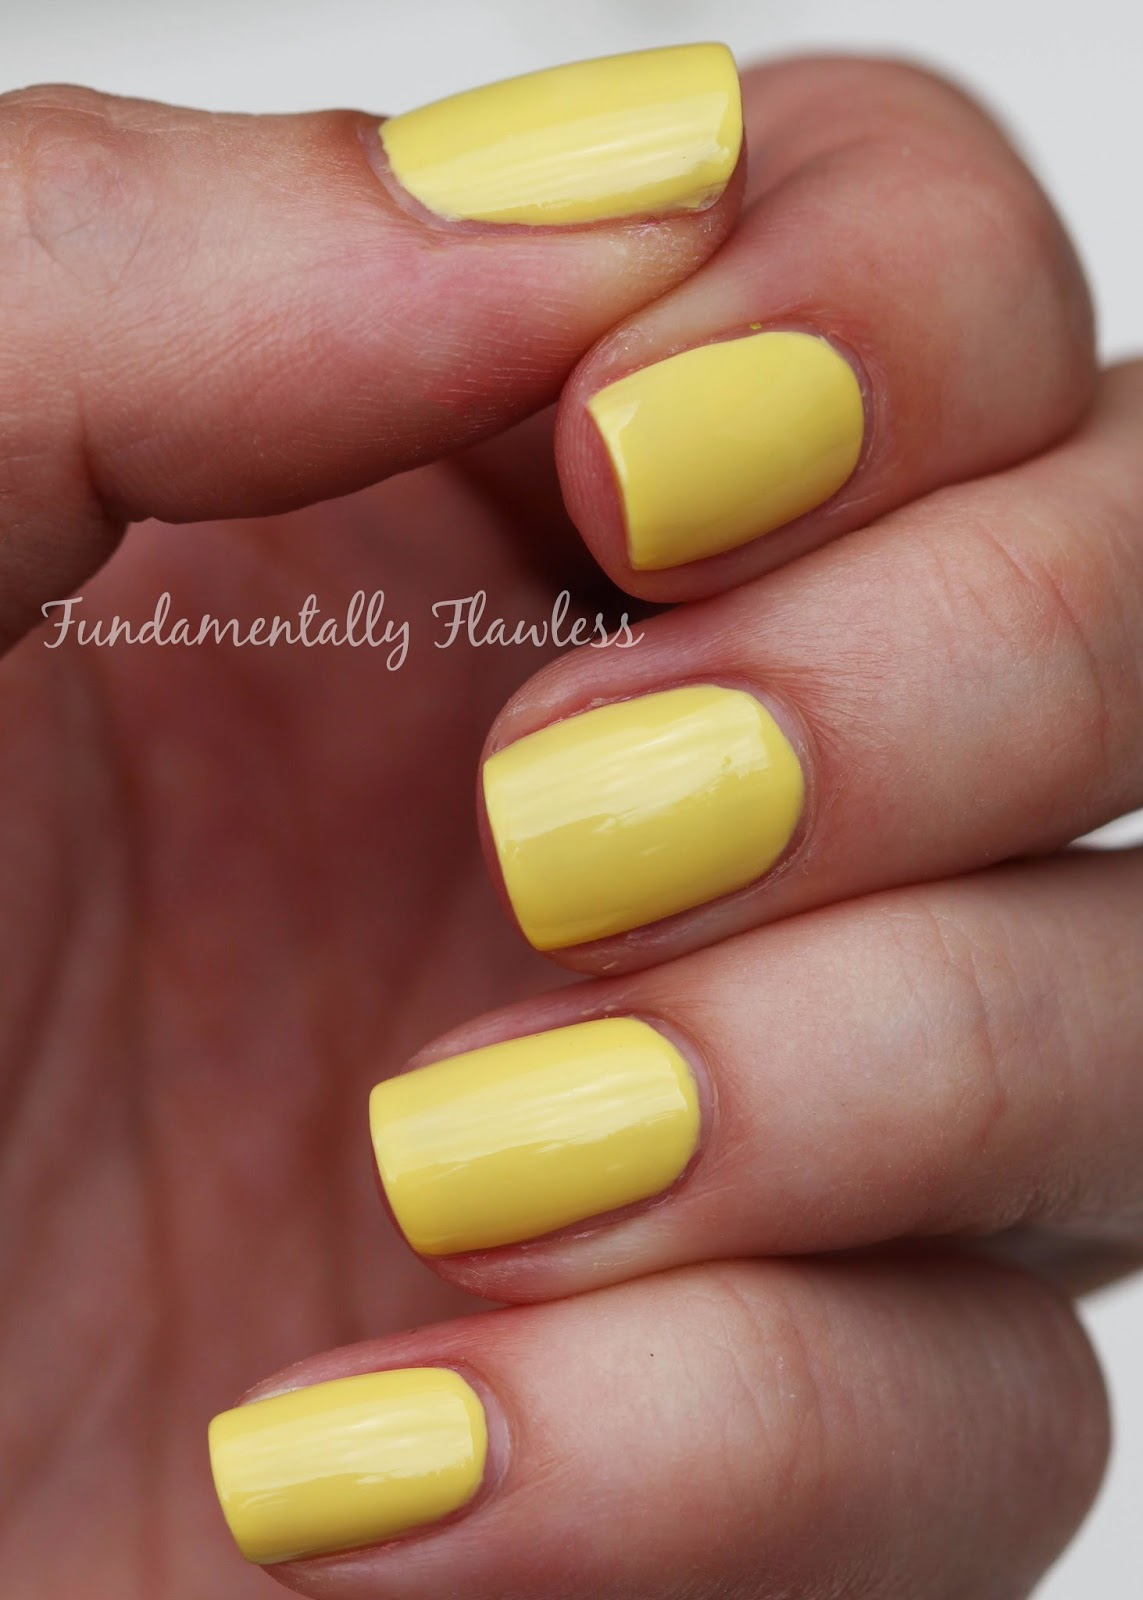 Fundamentally Flawless: No 7 Gel Look Shine Summer Nail Colour ...